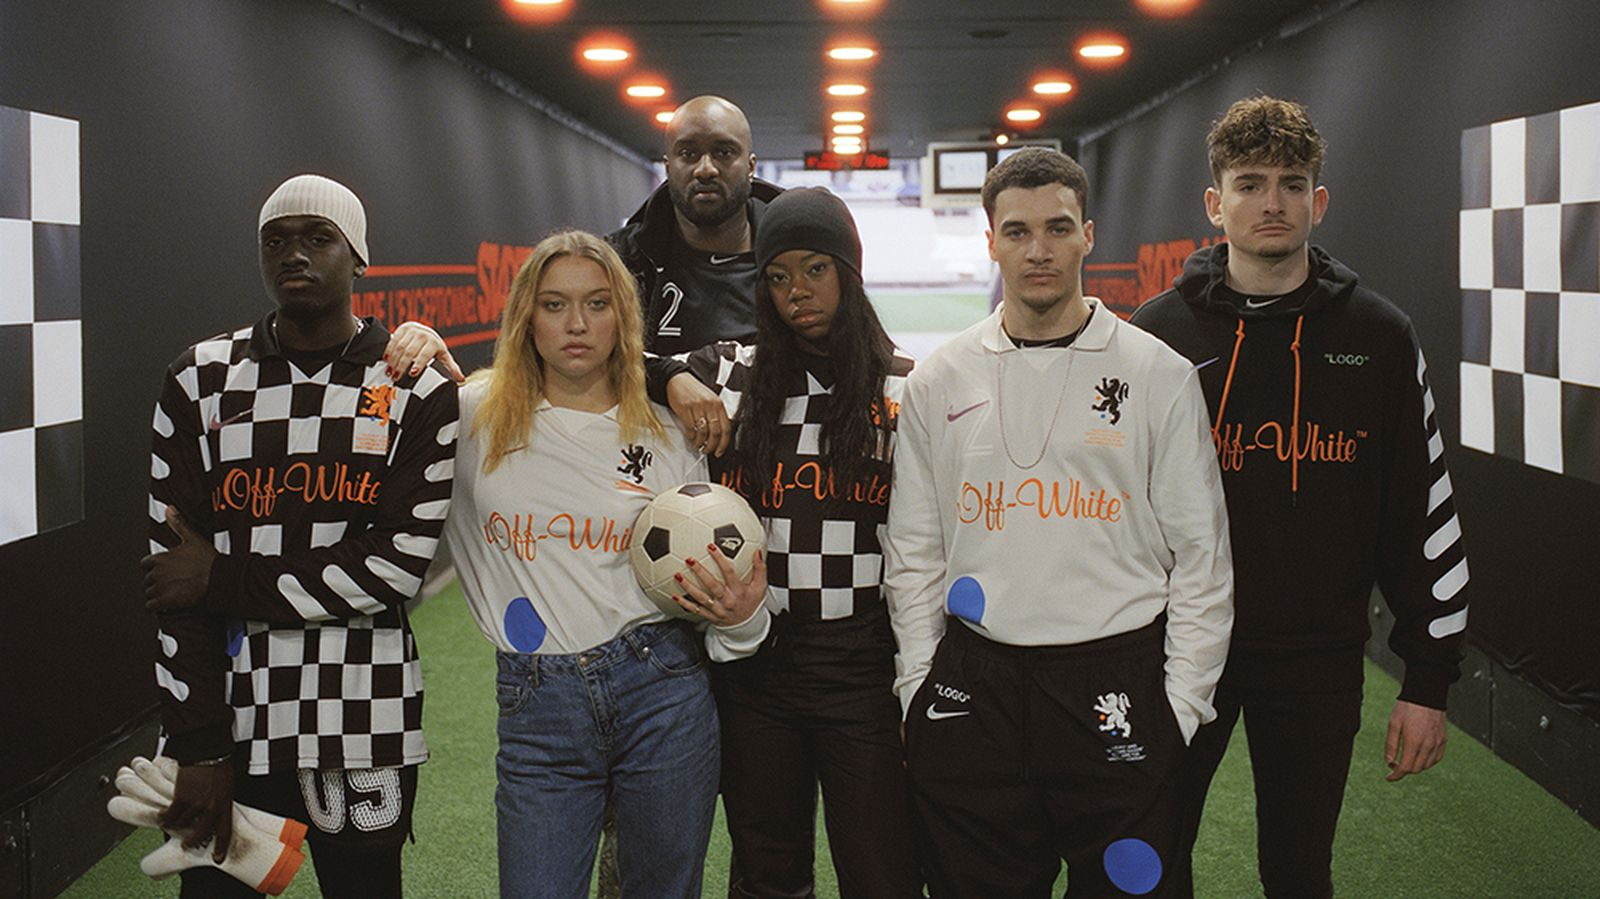 virgil abloh nike world cup capsule 2018 FIFA World Cup OFF-WHITE c/o Virgil Abloh